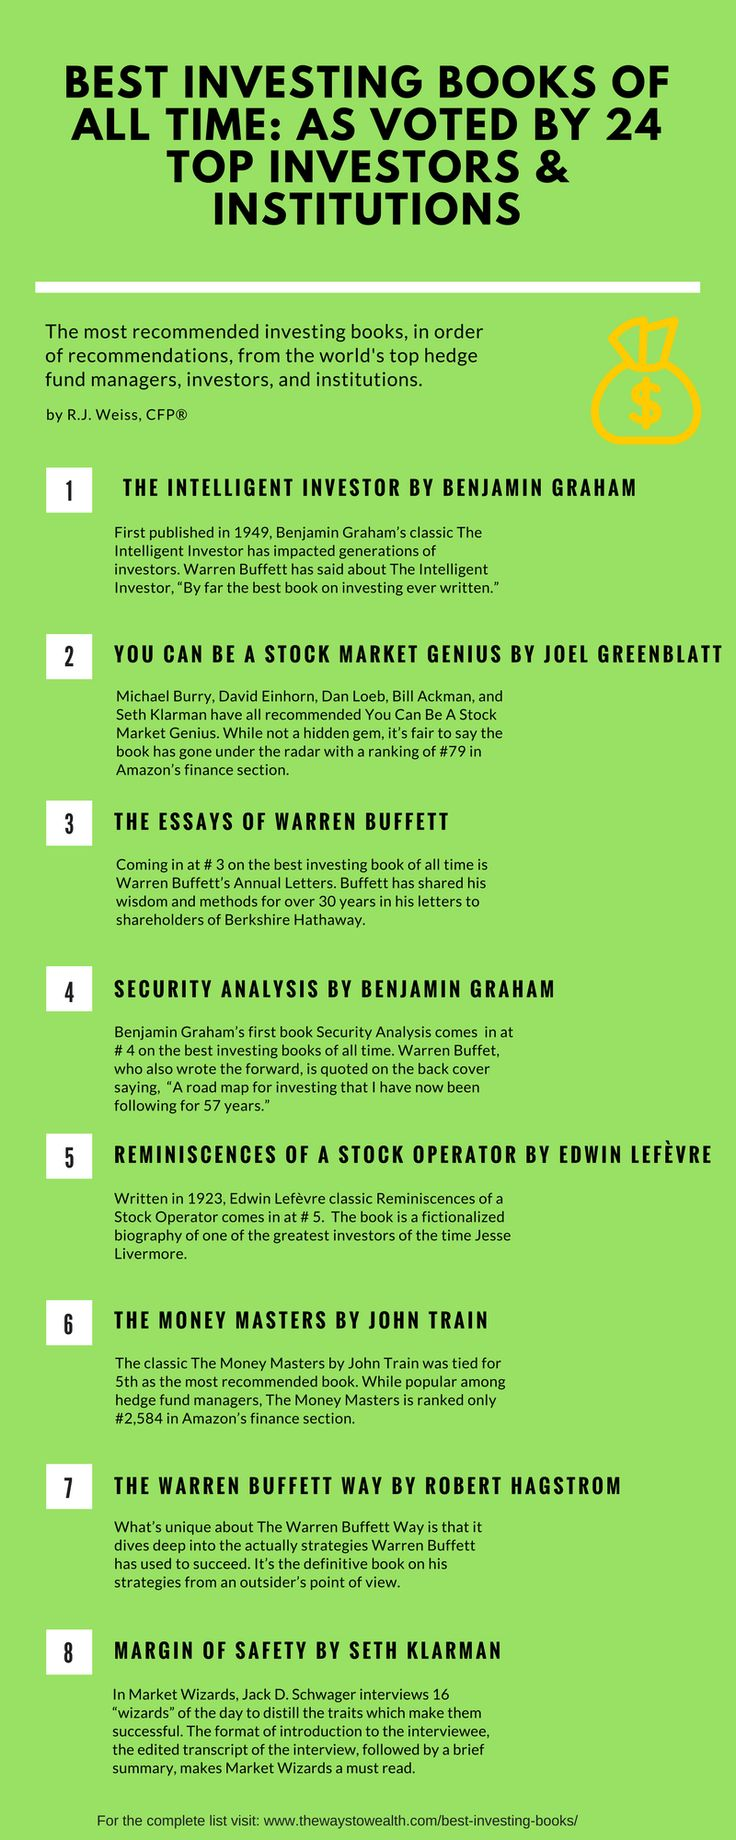 Best Investing Books of All Time: As Voted By 24 Top Investors & Institutions via @https://www.pinterest.com/thewaystowealth/